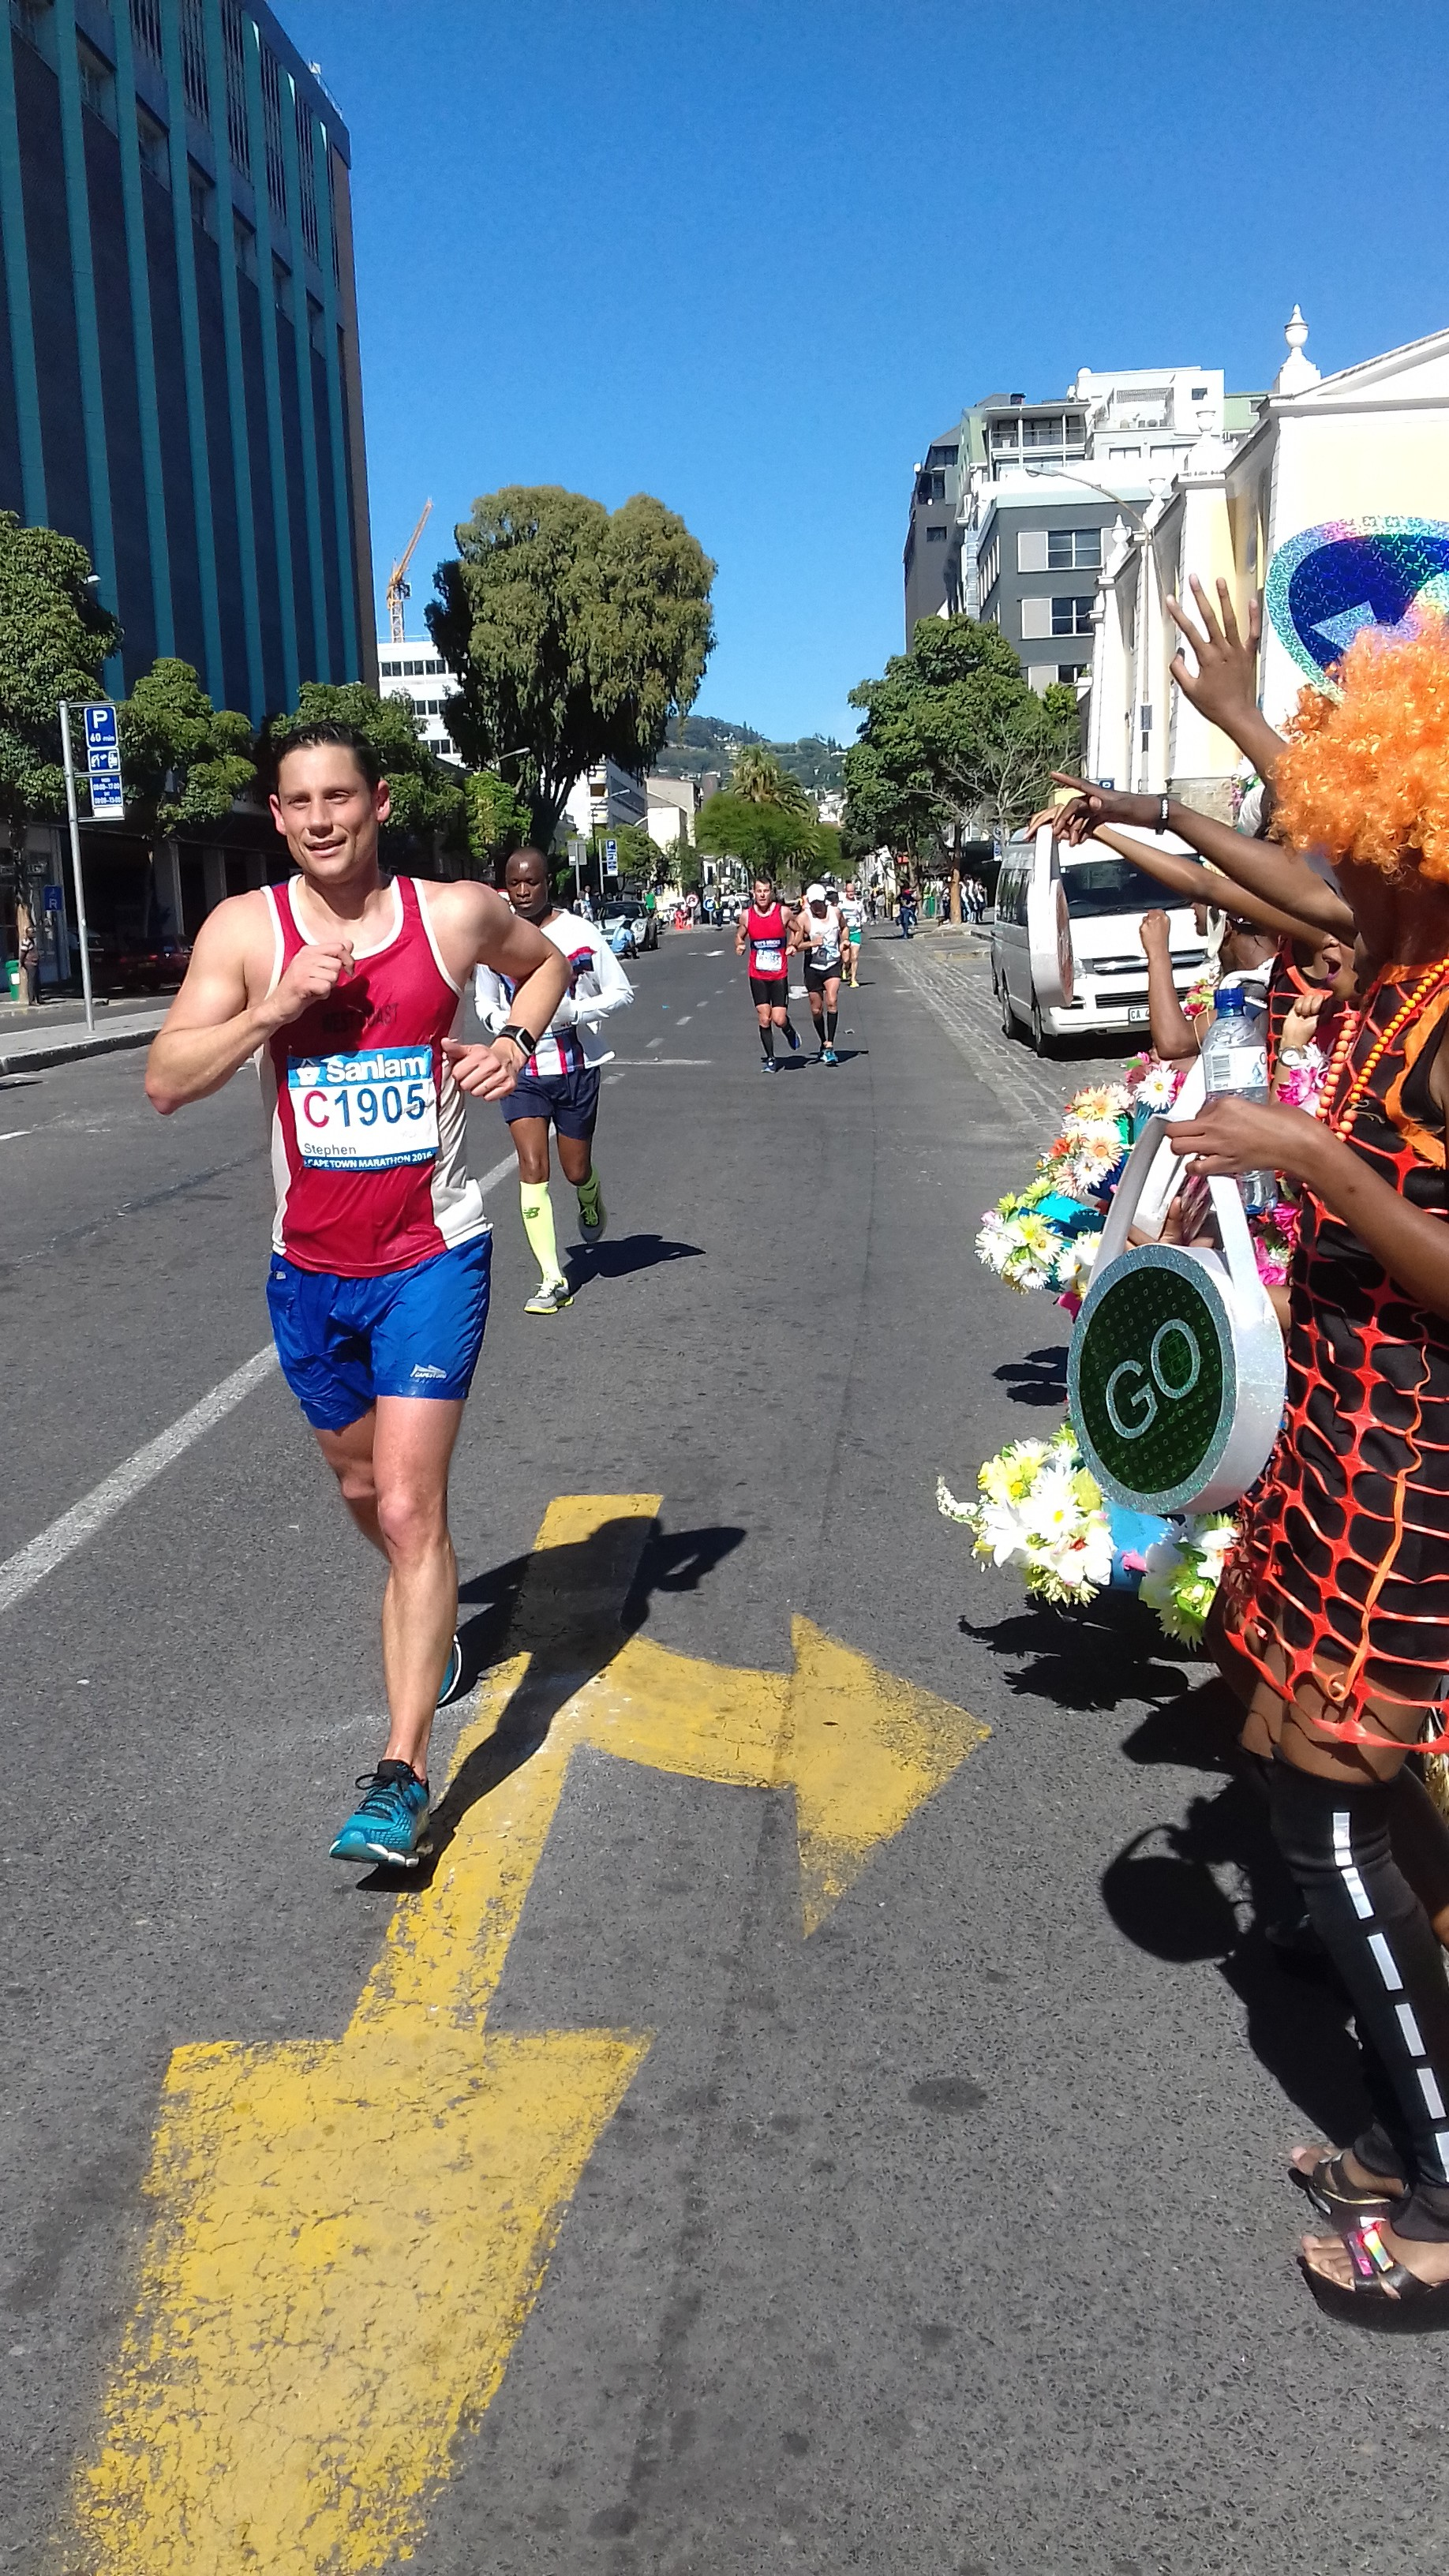 Cape Town Carnival supports the Cape Town Marathon 2016